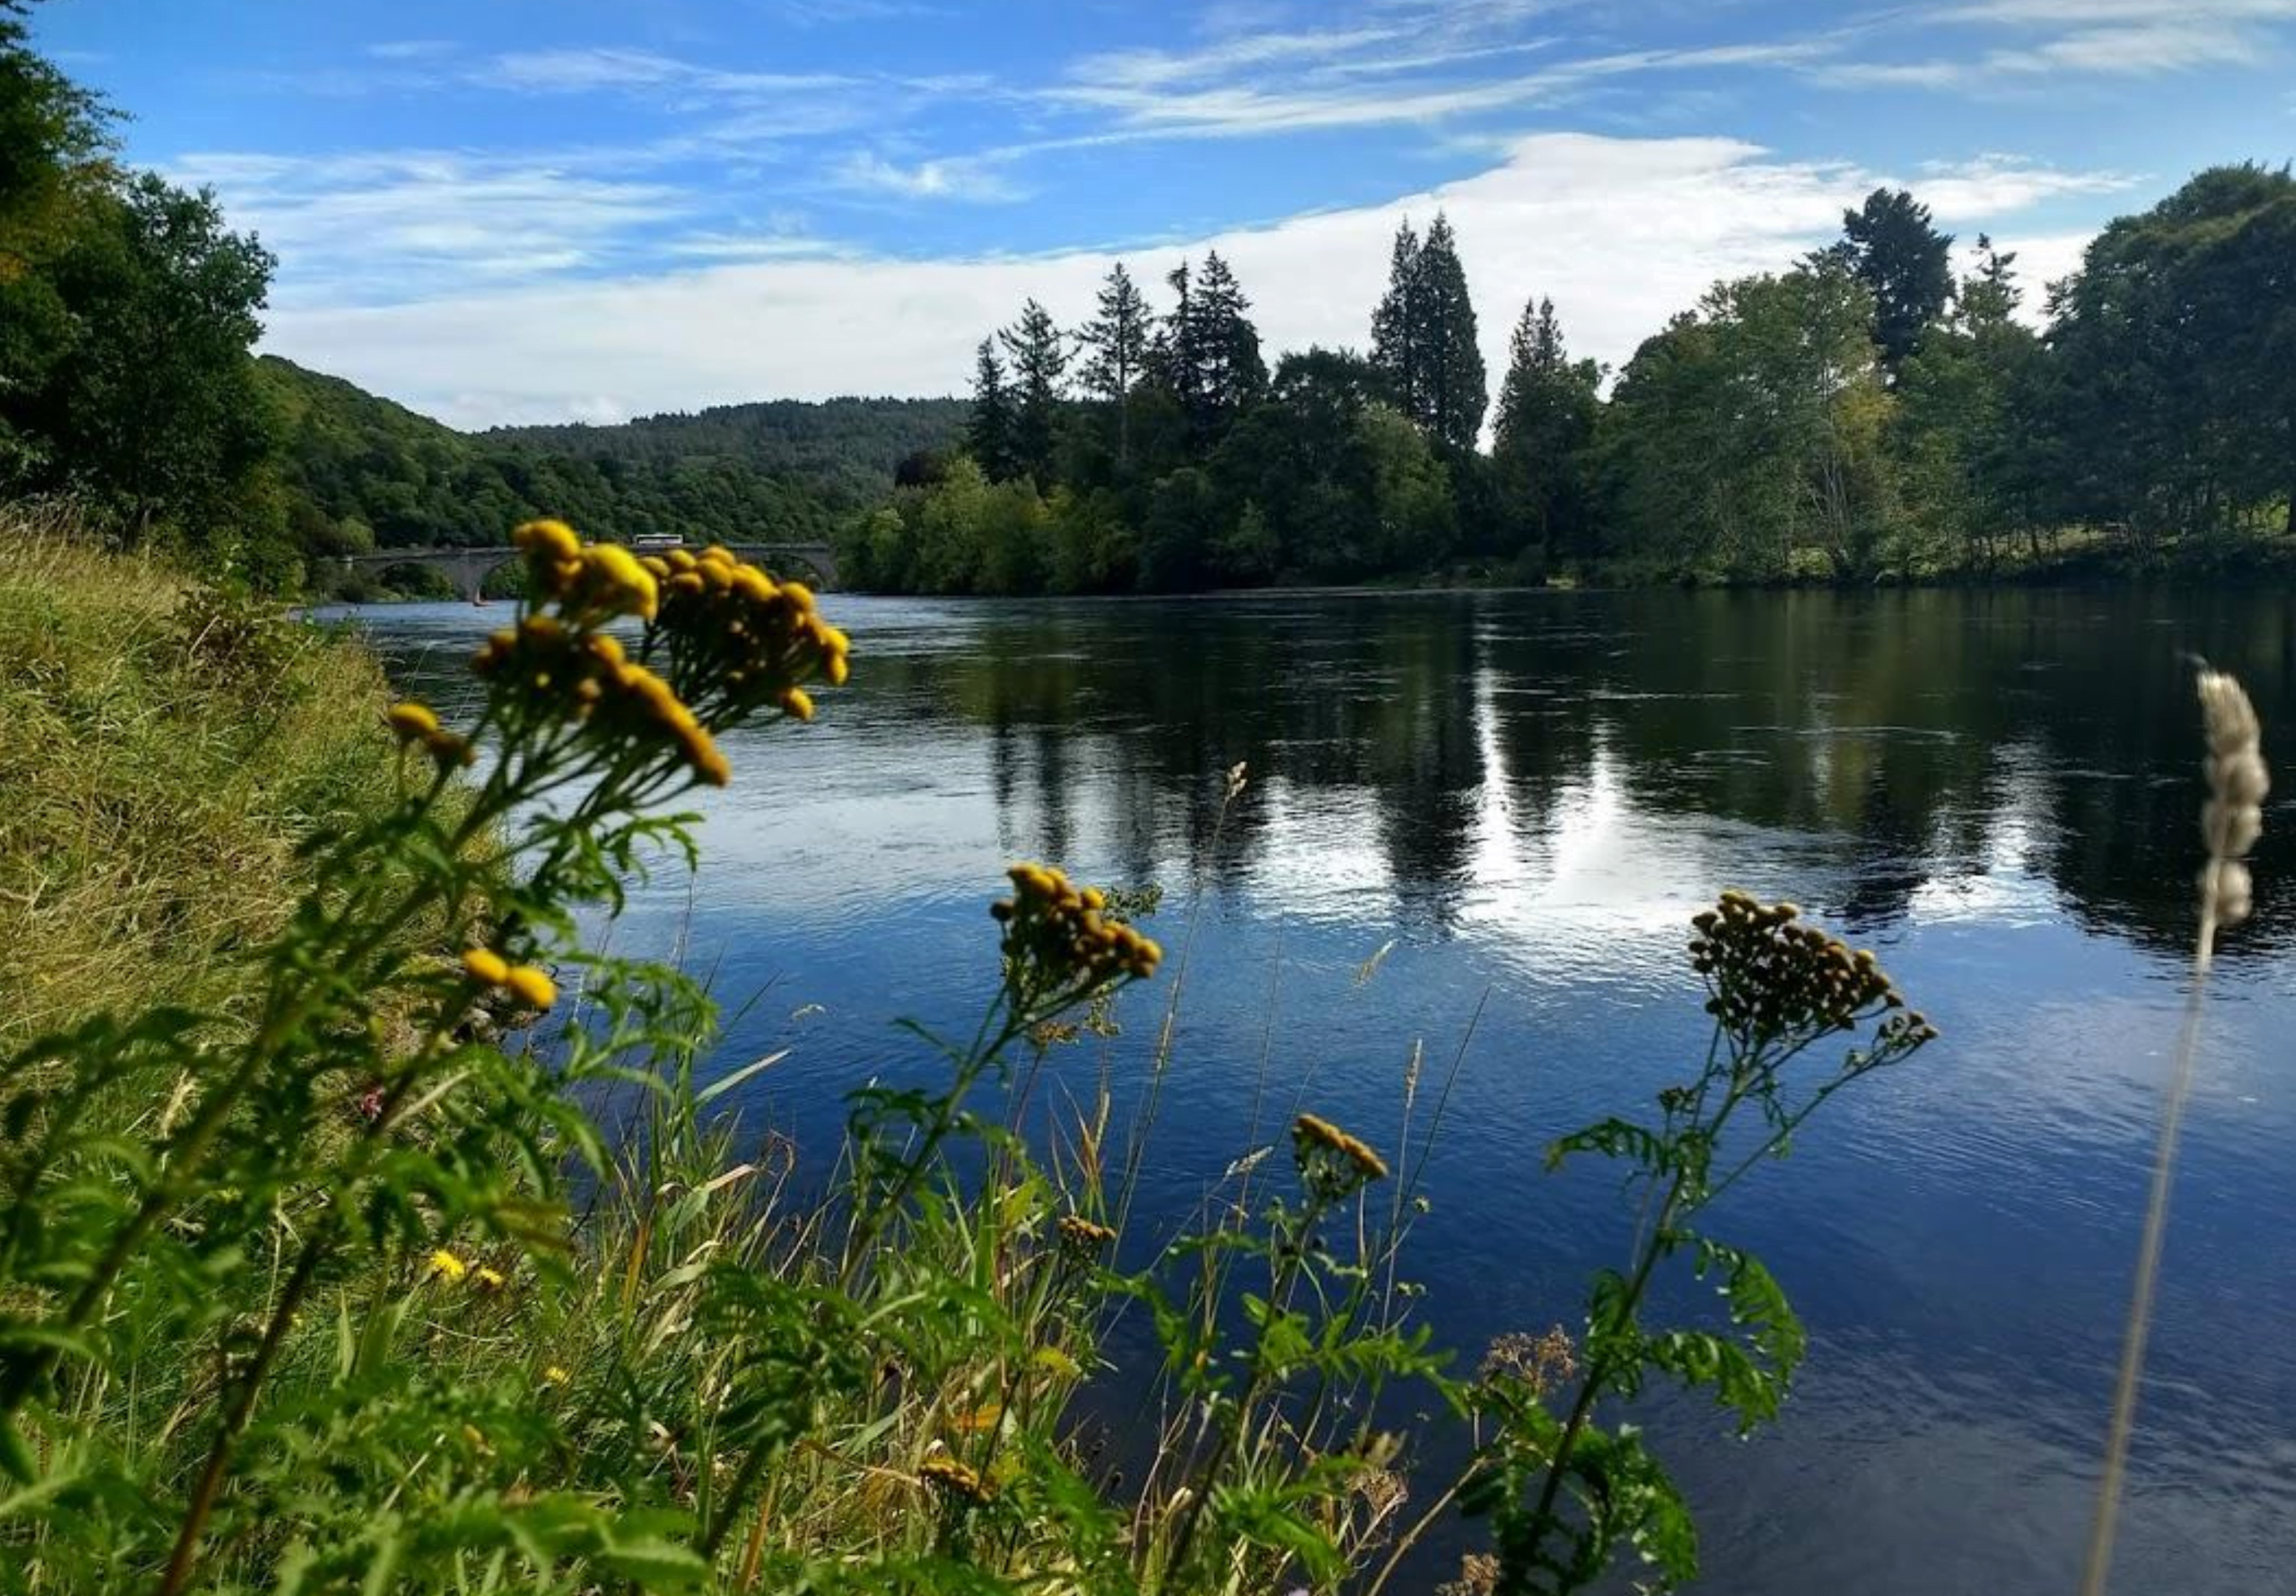 A river in Perthshire on a sunny day